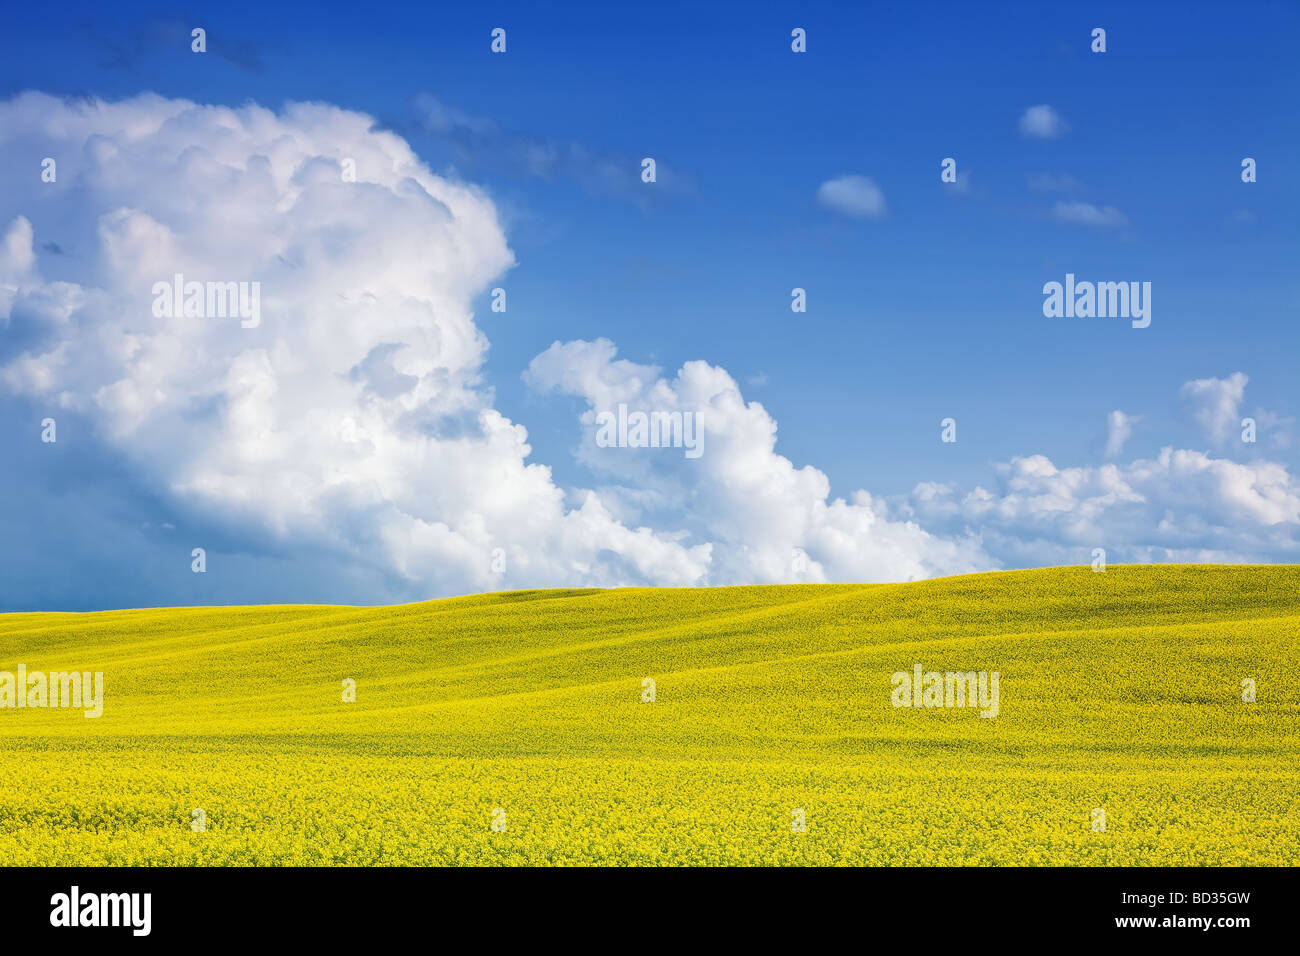 Canola Field and Towering Cumulus Clouds on the Canadian Prairies, Pembina Valley, Manitoba, Canada. - Stock Image